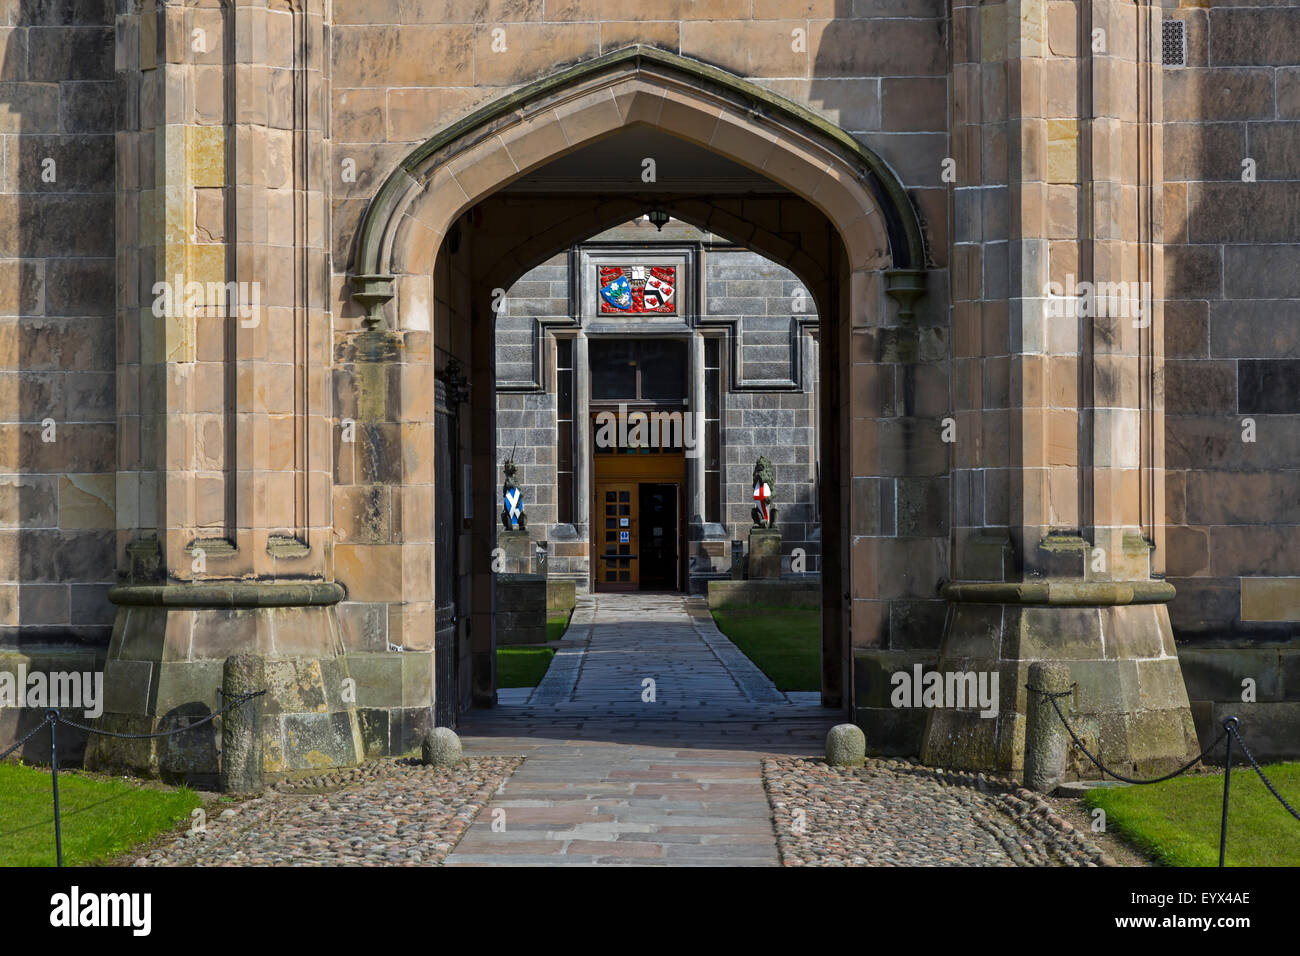 Entrance to King's College at Aberdeen University, Scotland, UK - Stock Image